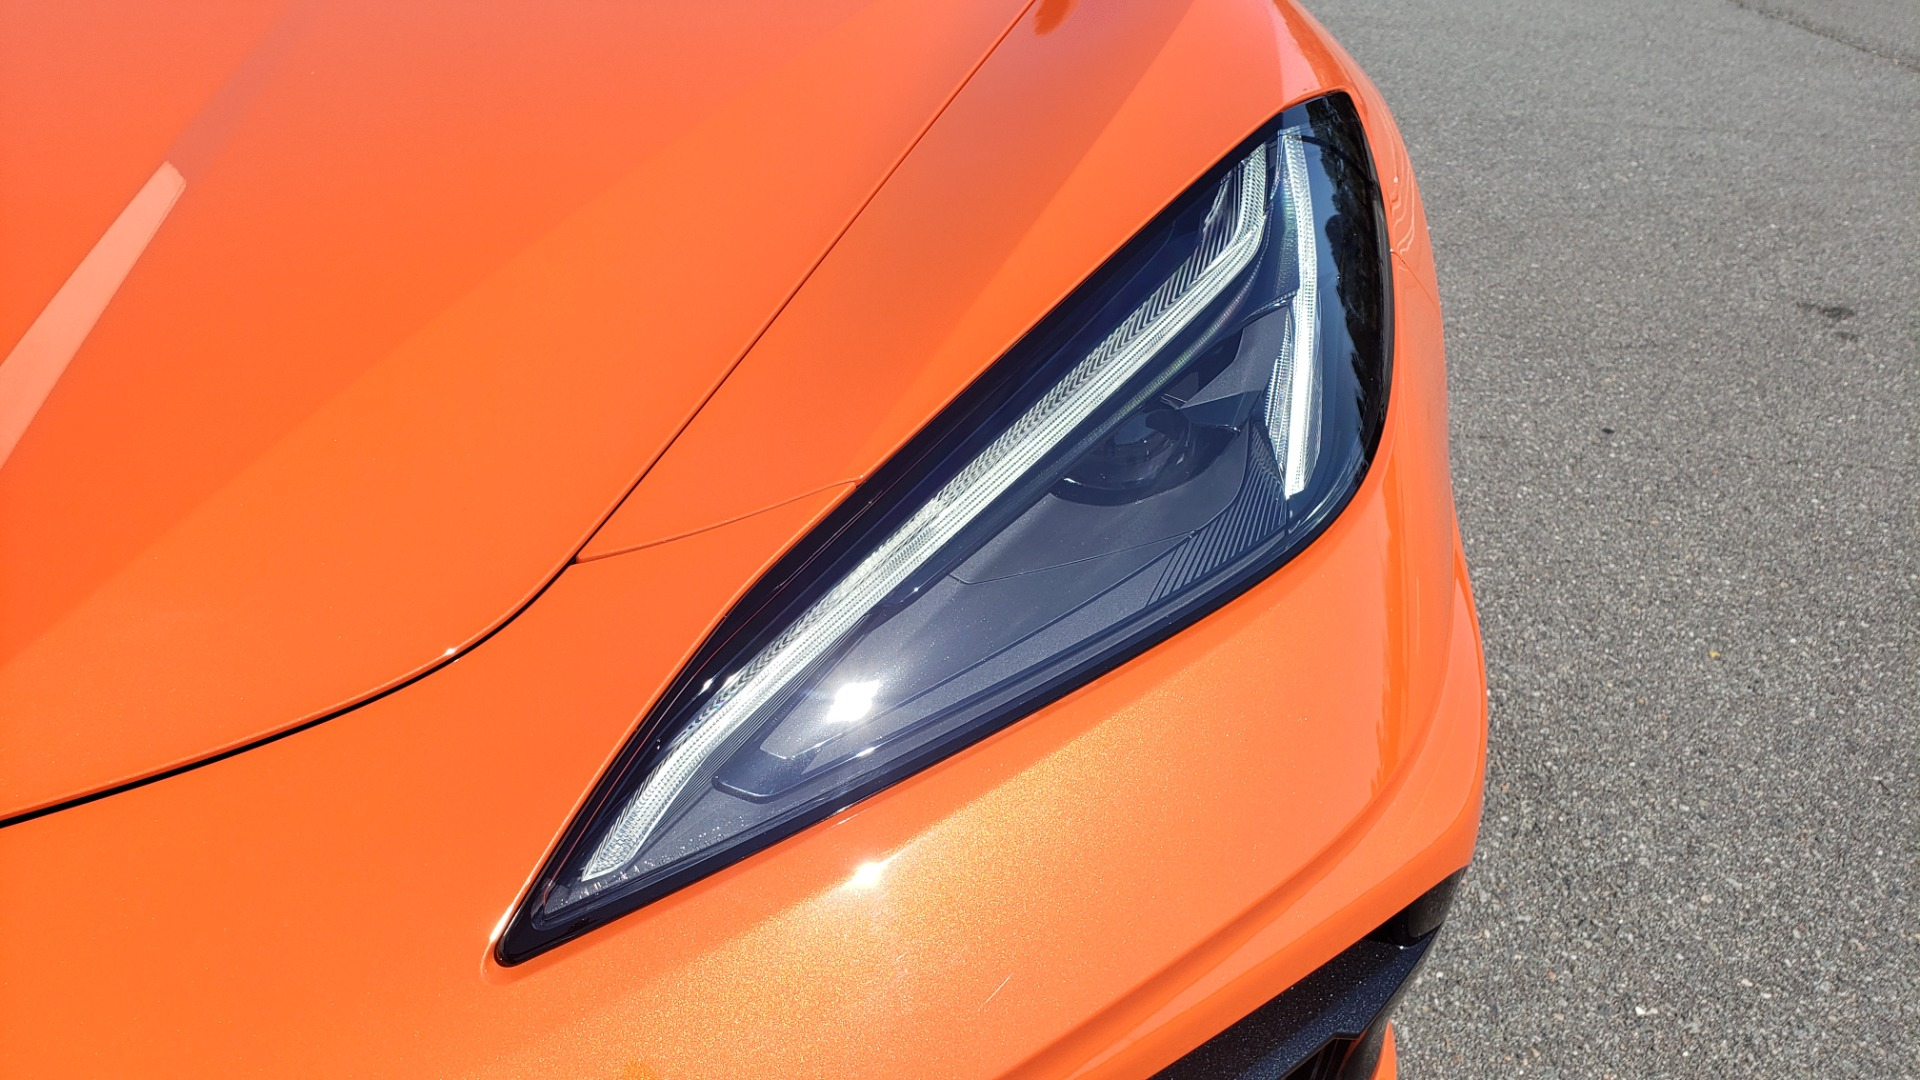 Used 2020 Chevrolet CORVETTE C8 STINGRAY 3LT COUPE / NAV / BOSE / CAMERA / LIKE NEW for sale Sold at Formula Imports in Charlotte NC 28227 39